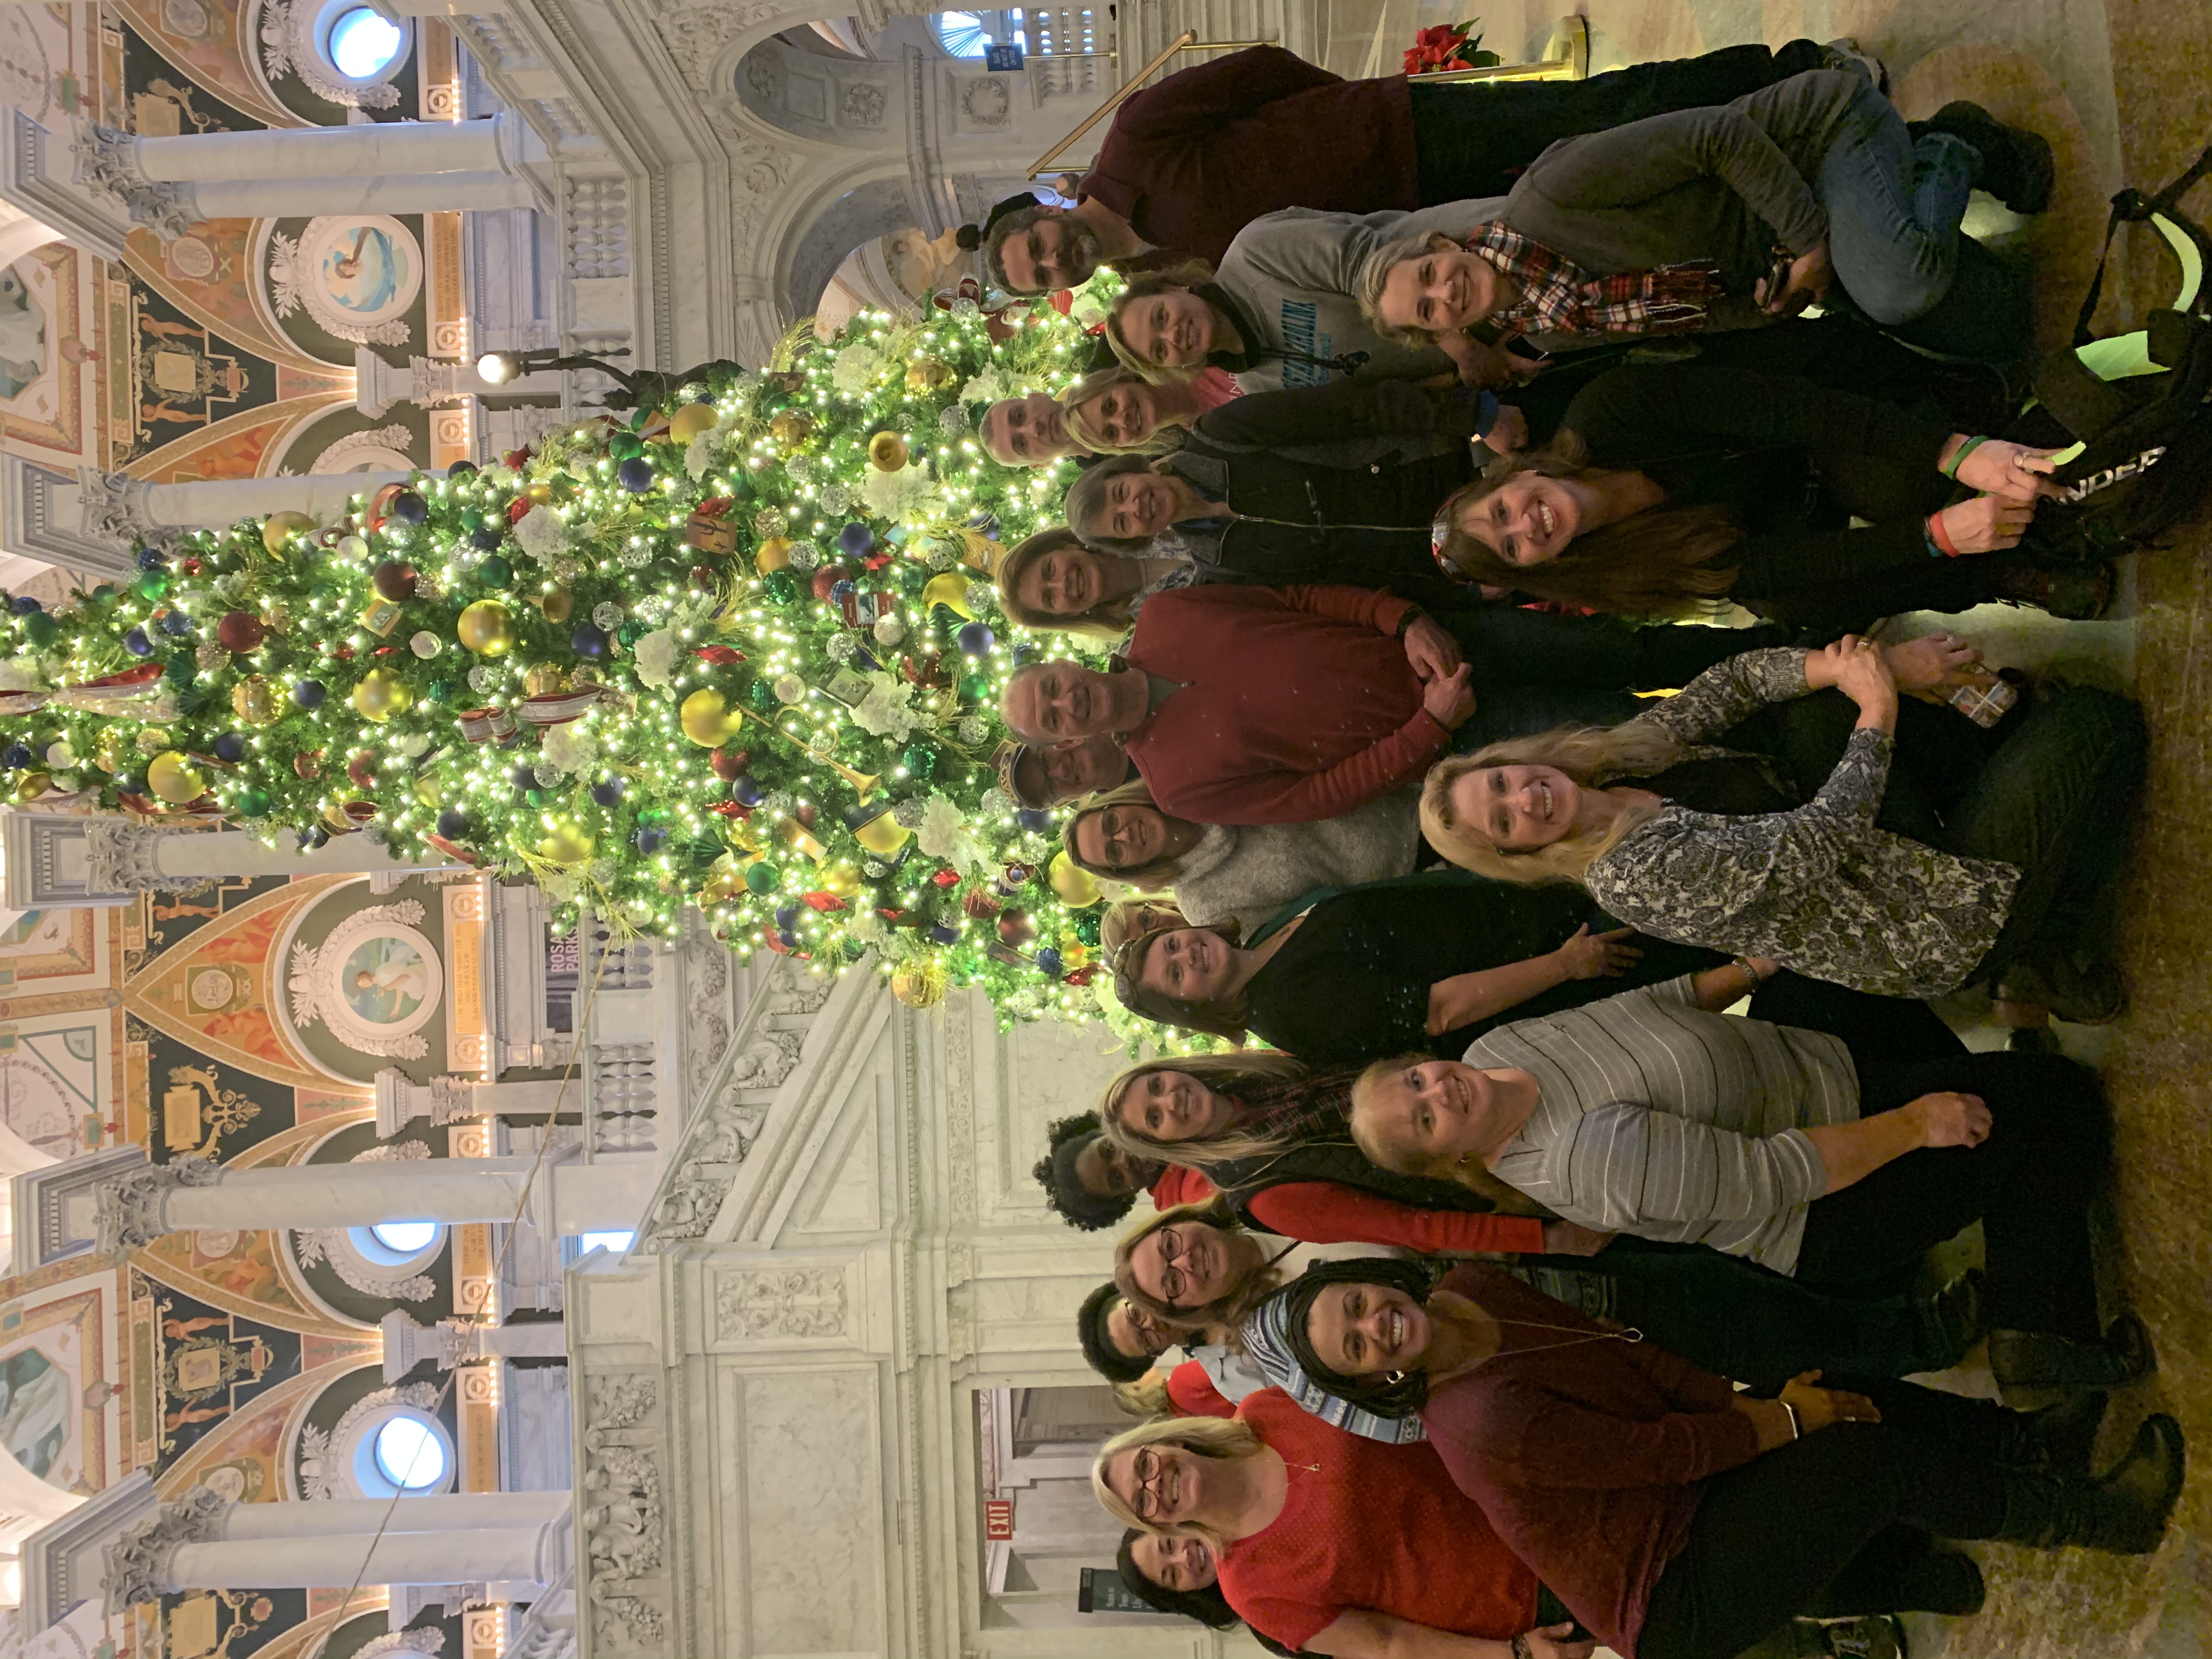 Calvert County Librarians at the Christmas Tree at the Library of Congress